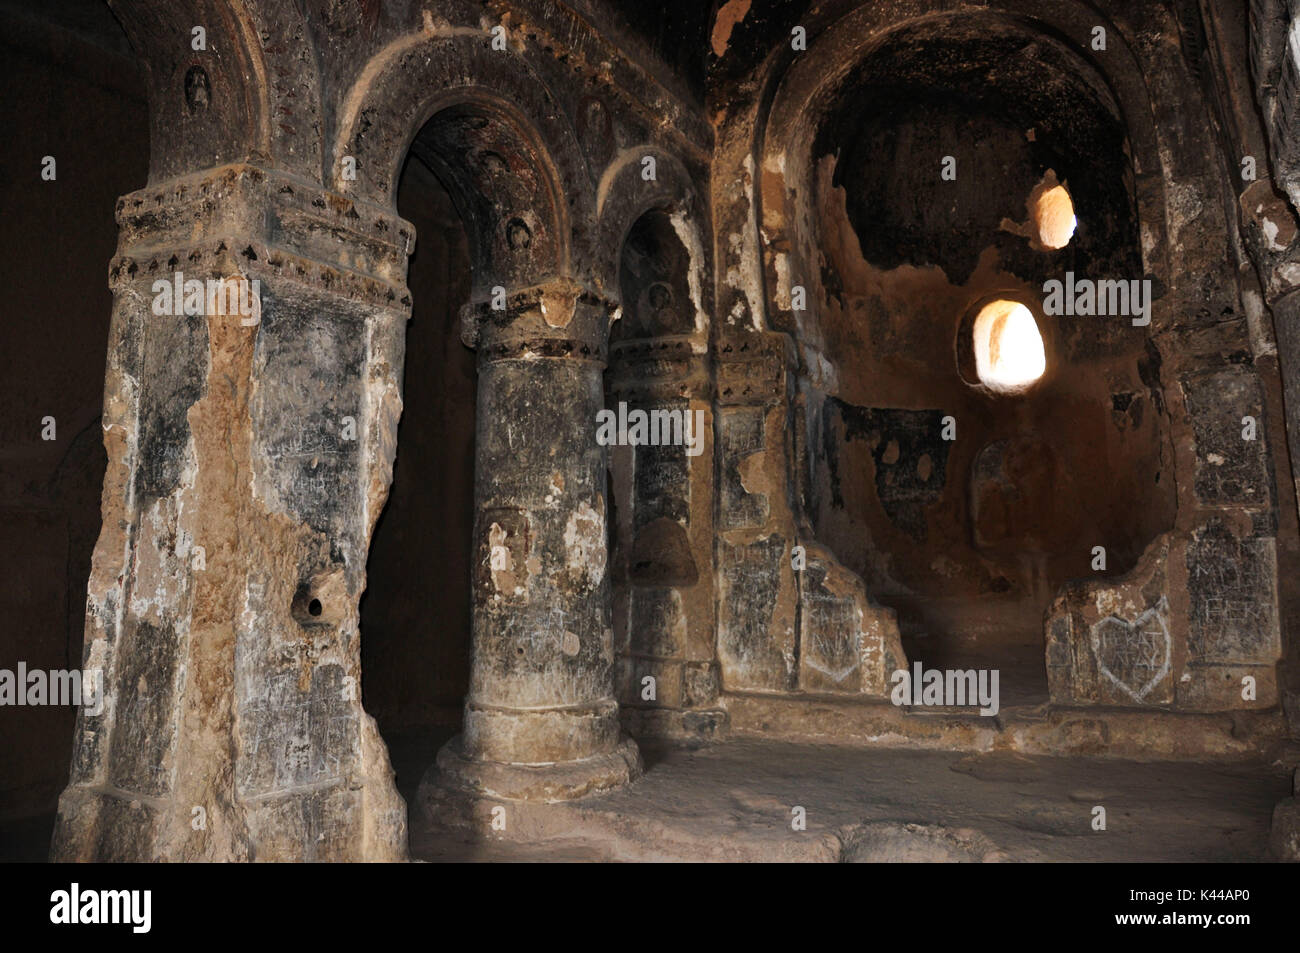 In Turkey, Kapadokia, you can see place where religious rites were practiced on a daily basis under the supervision of a preacher. This place is the Open Air Museum in Goreme where you can visit some of the churches of the time. - Stock Image